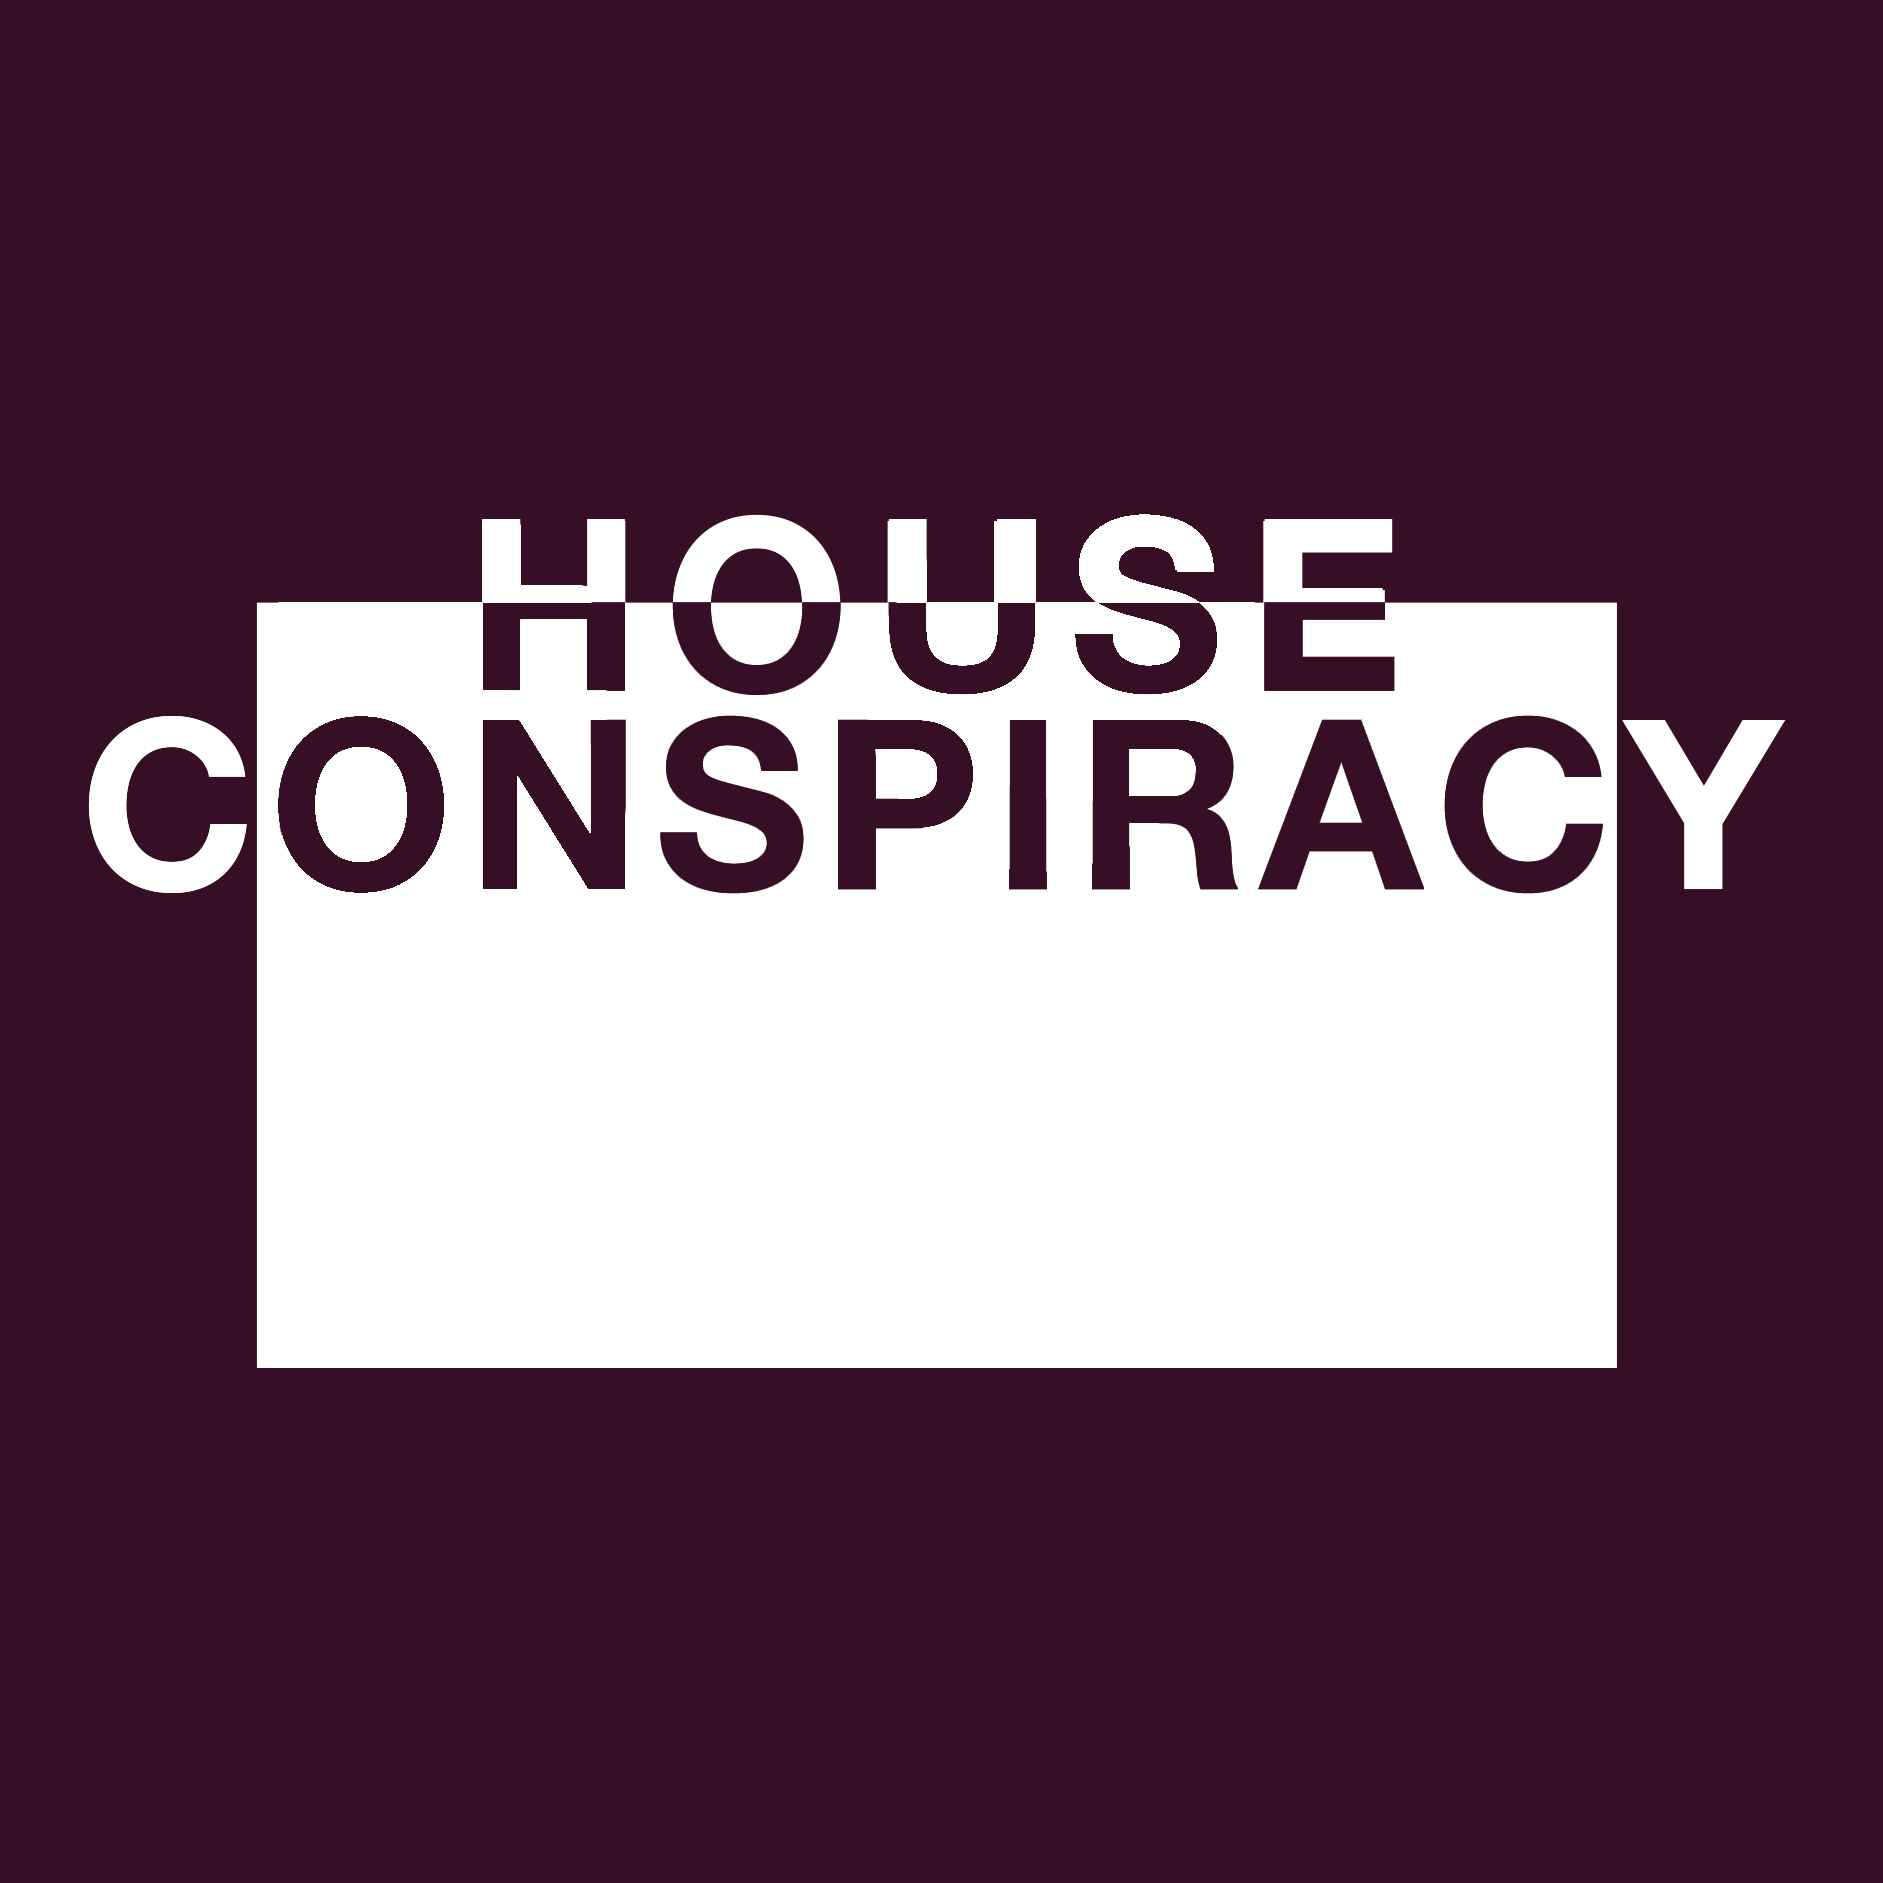 House Conspiracy Logo